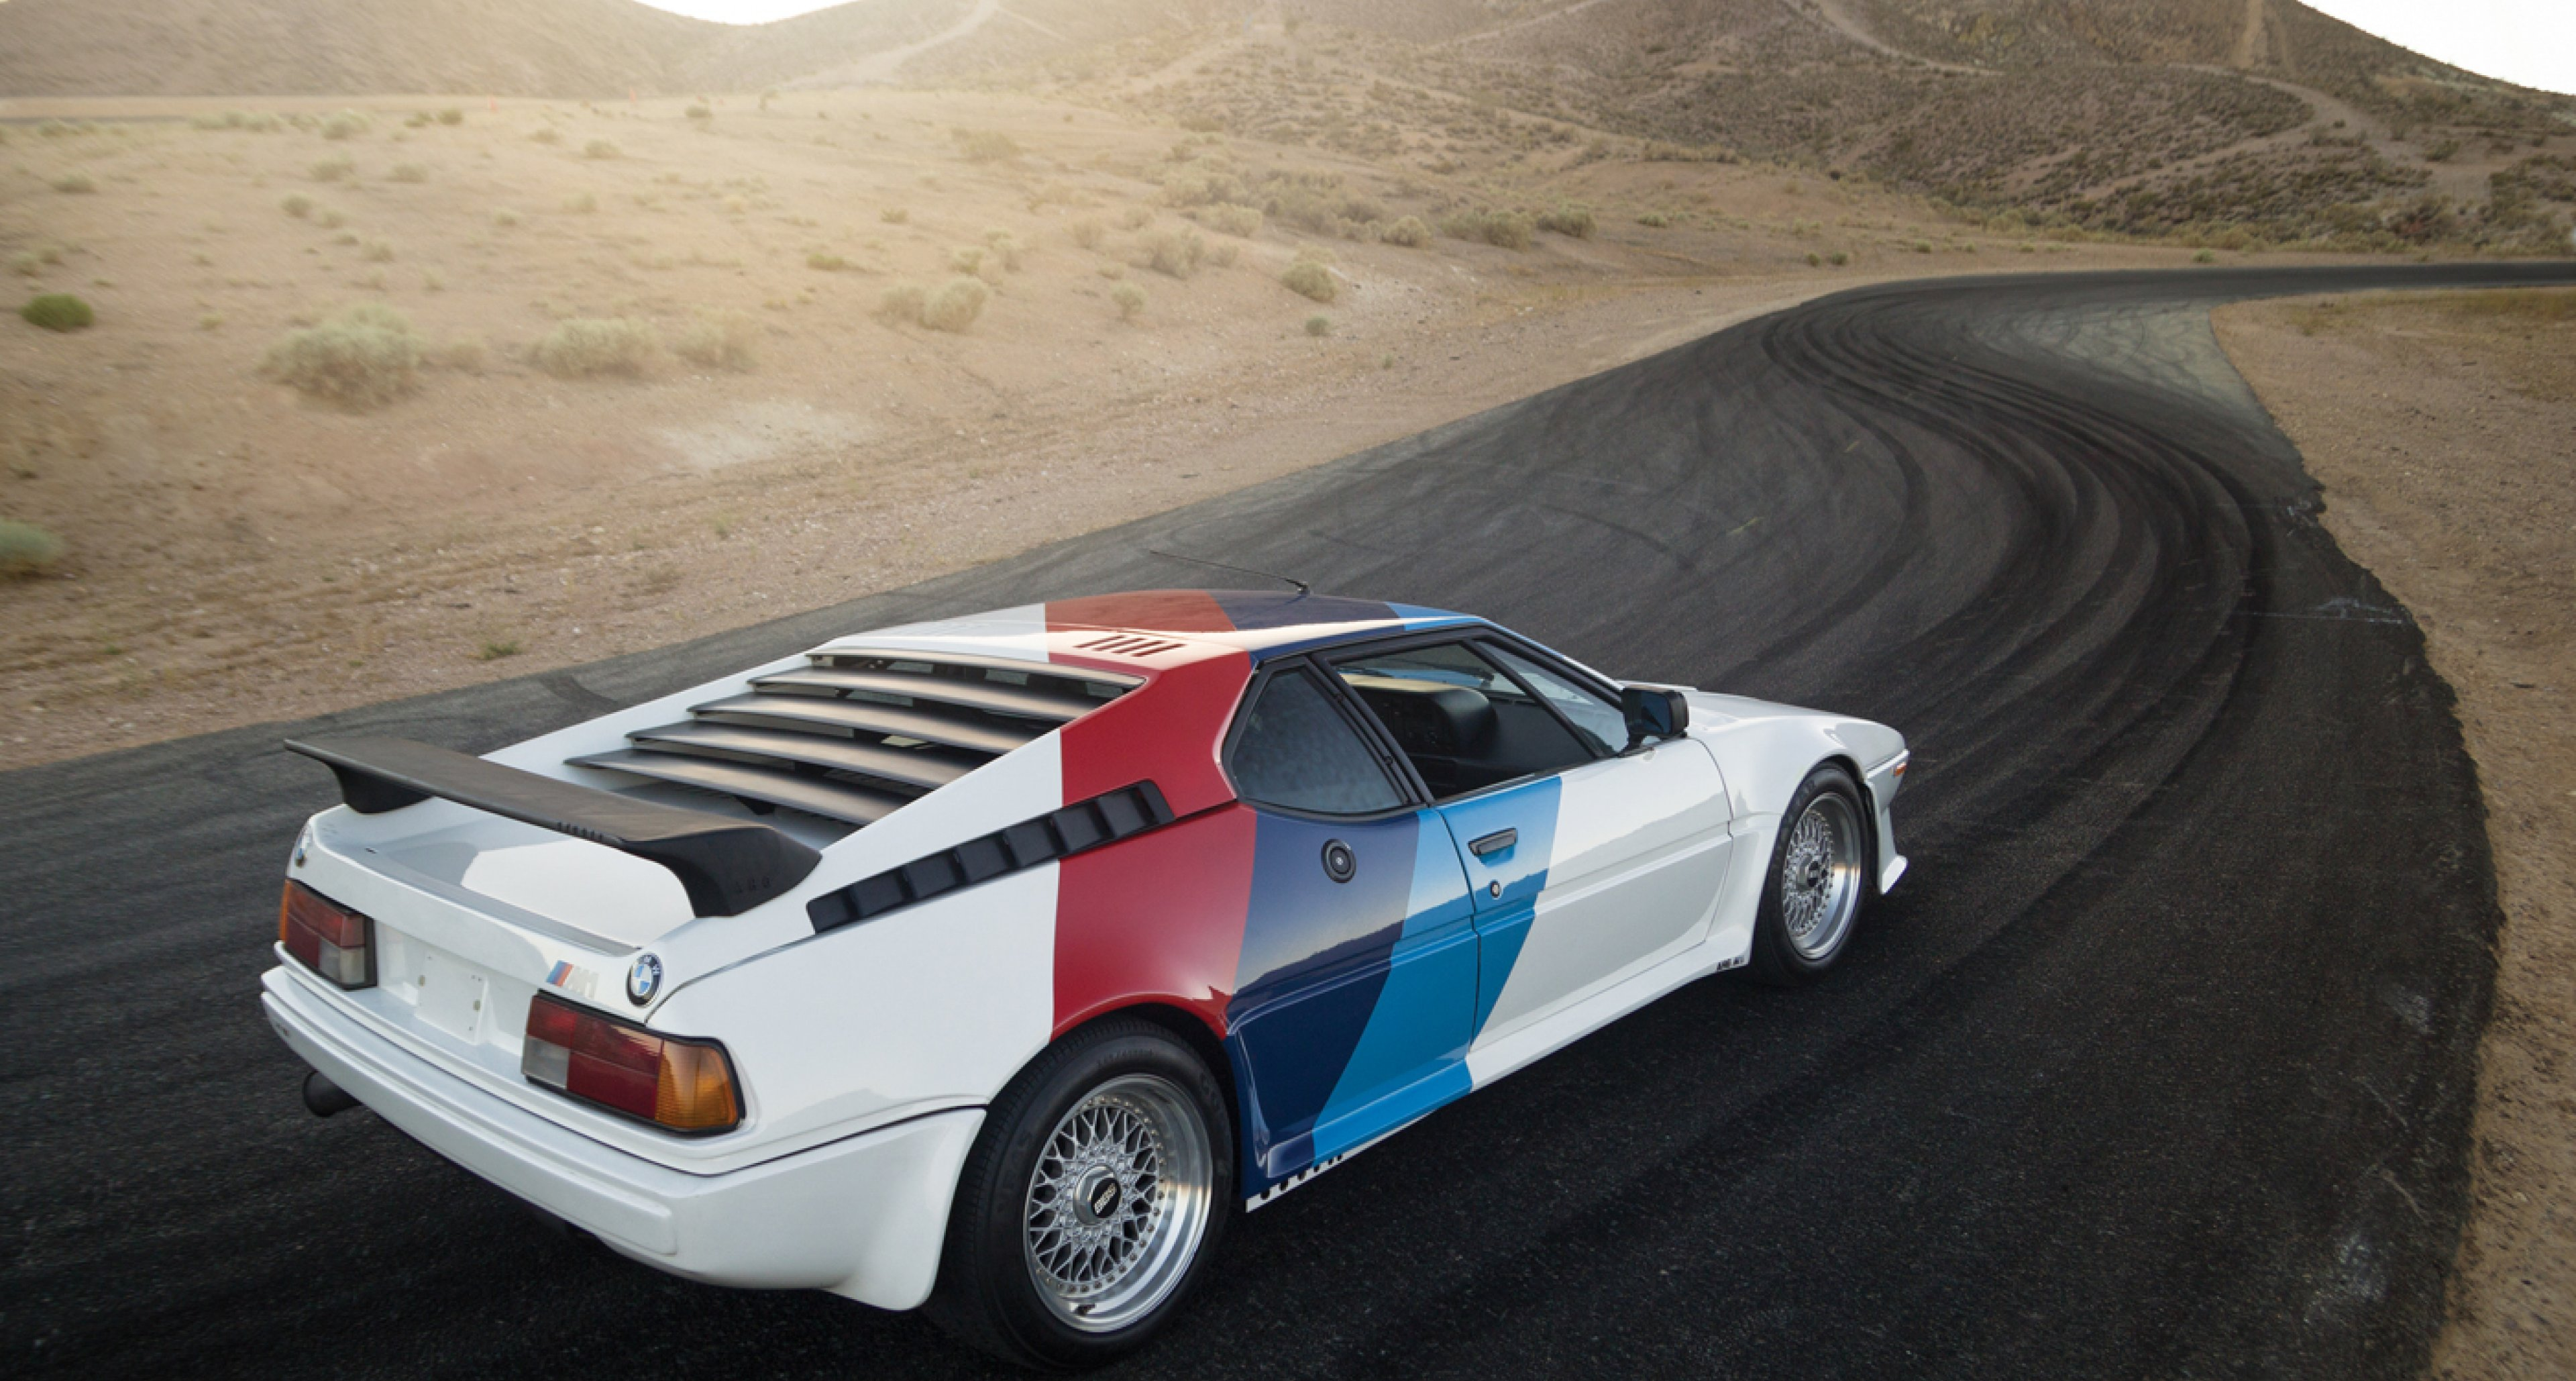 Sleeping Supercar Why The BMW M Could Take The Market By Storm - 2014 bmw m1 price